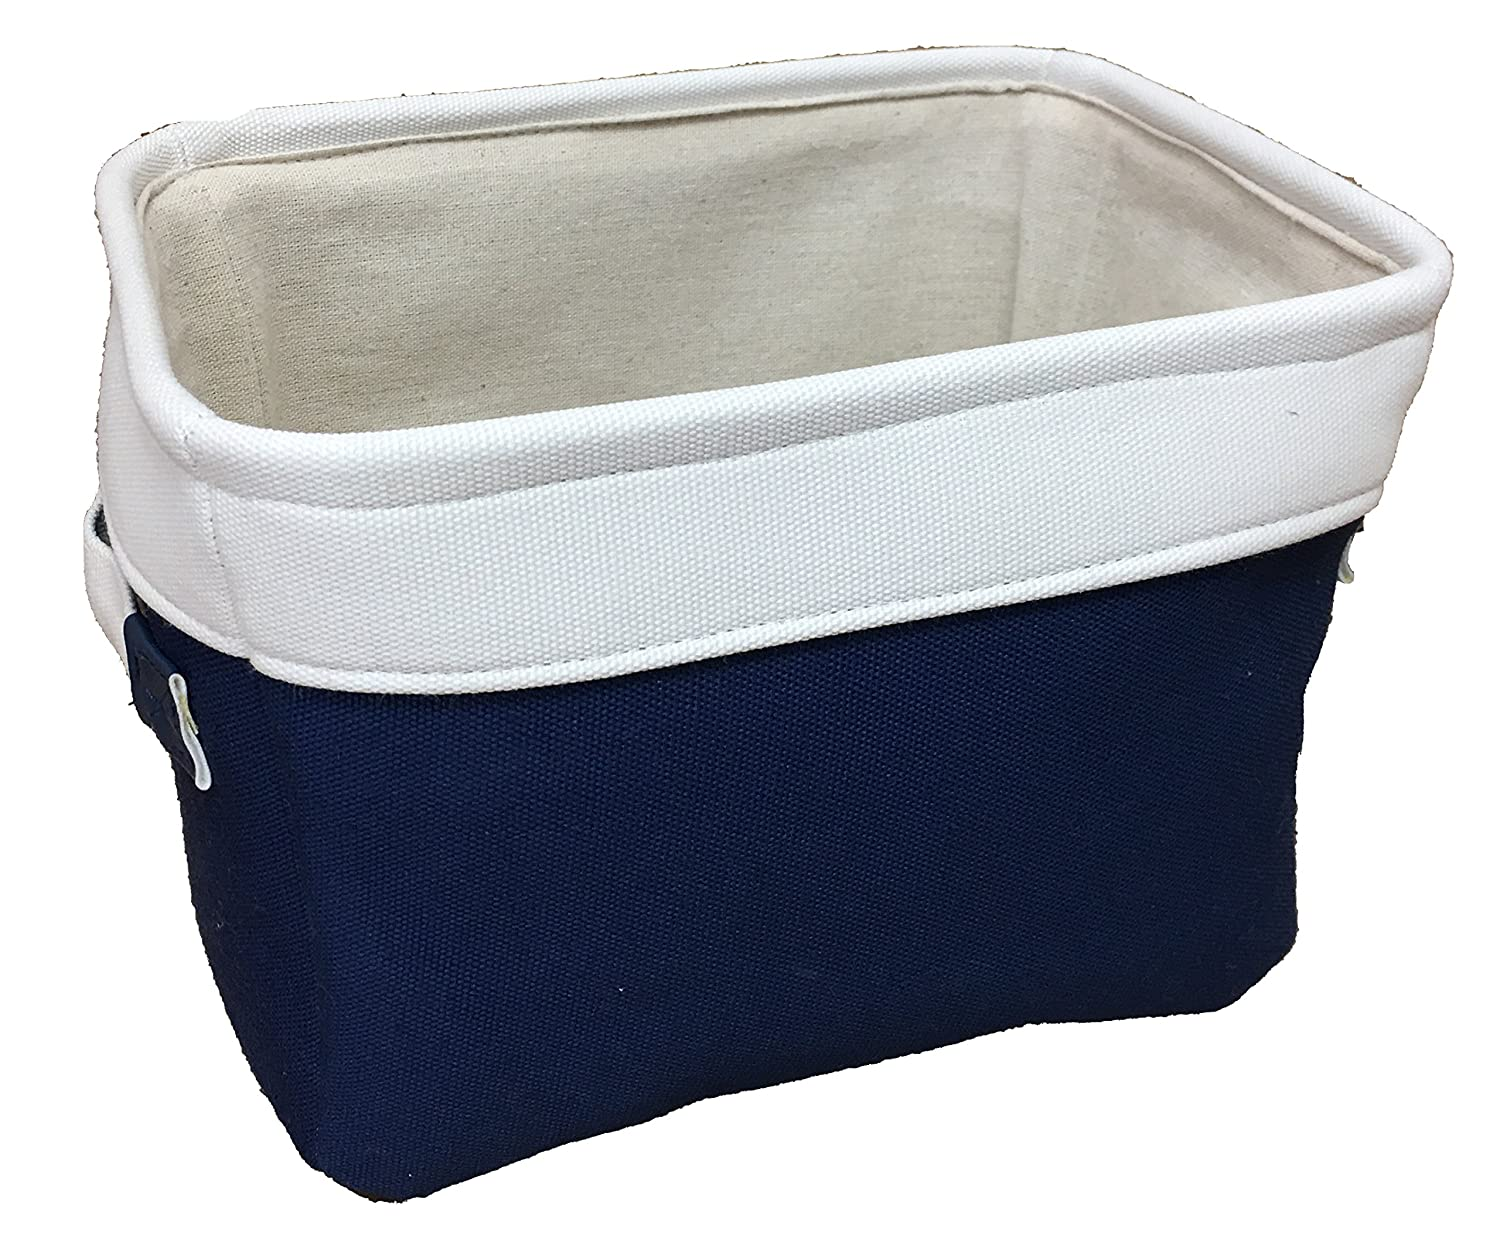 Canvas storage baskets in assorted sizes and colors. Small shelf storage. Makeup organiser or toy basket. knitting or wool bin (Navy Blue, Small) The pescara Collection